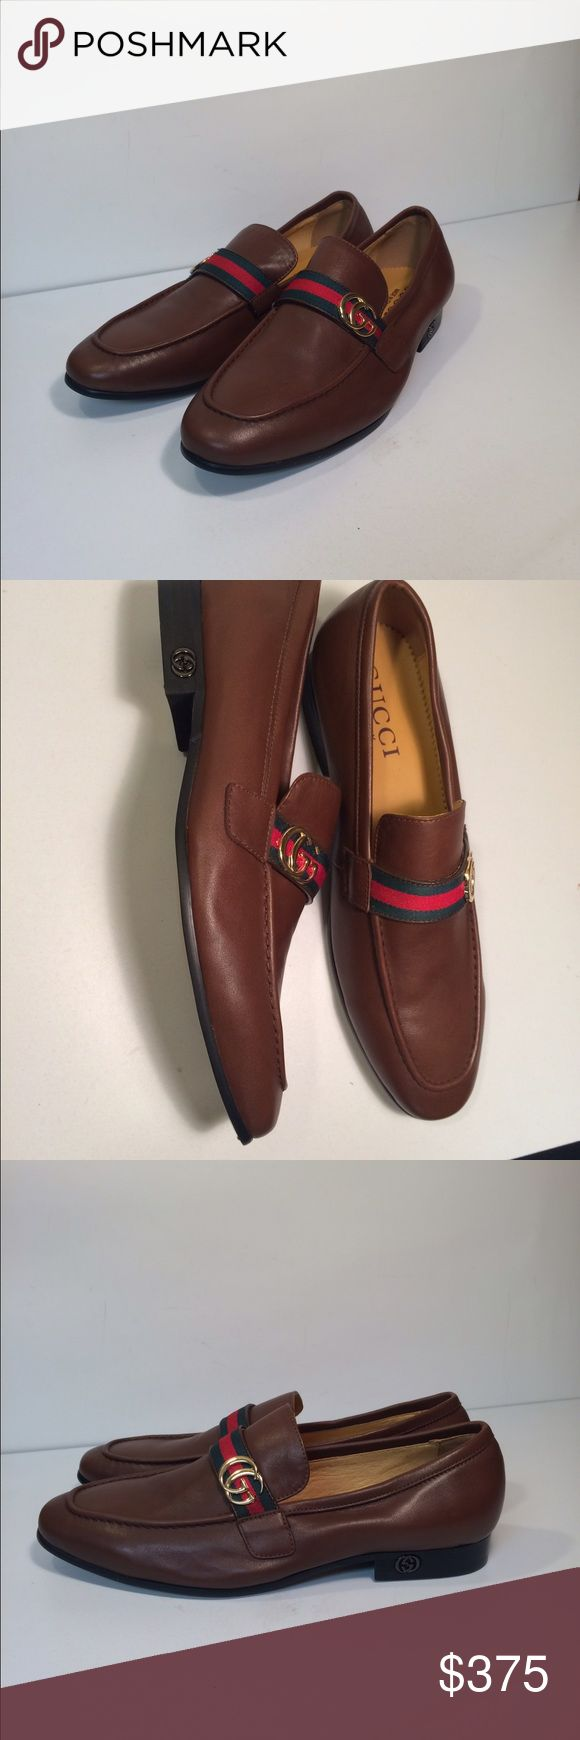 Gucci Men's Slip On Loafers Dress Shoes Gucci Men's Slip On Loafers Dress Shoes ... Size: EU 44 / US: 10.5 ... Color: Brown ... Material: Leather ... Condition: New Without Box / Tags. Gucci Shoes Loafers & Slip-Ons